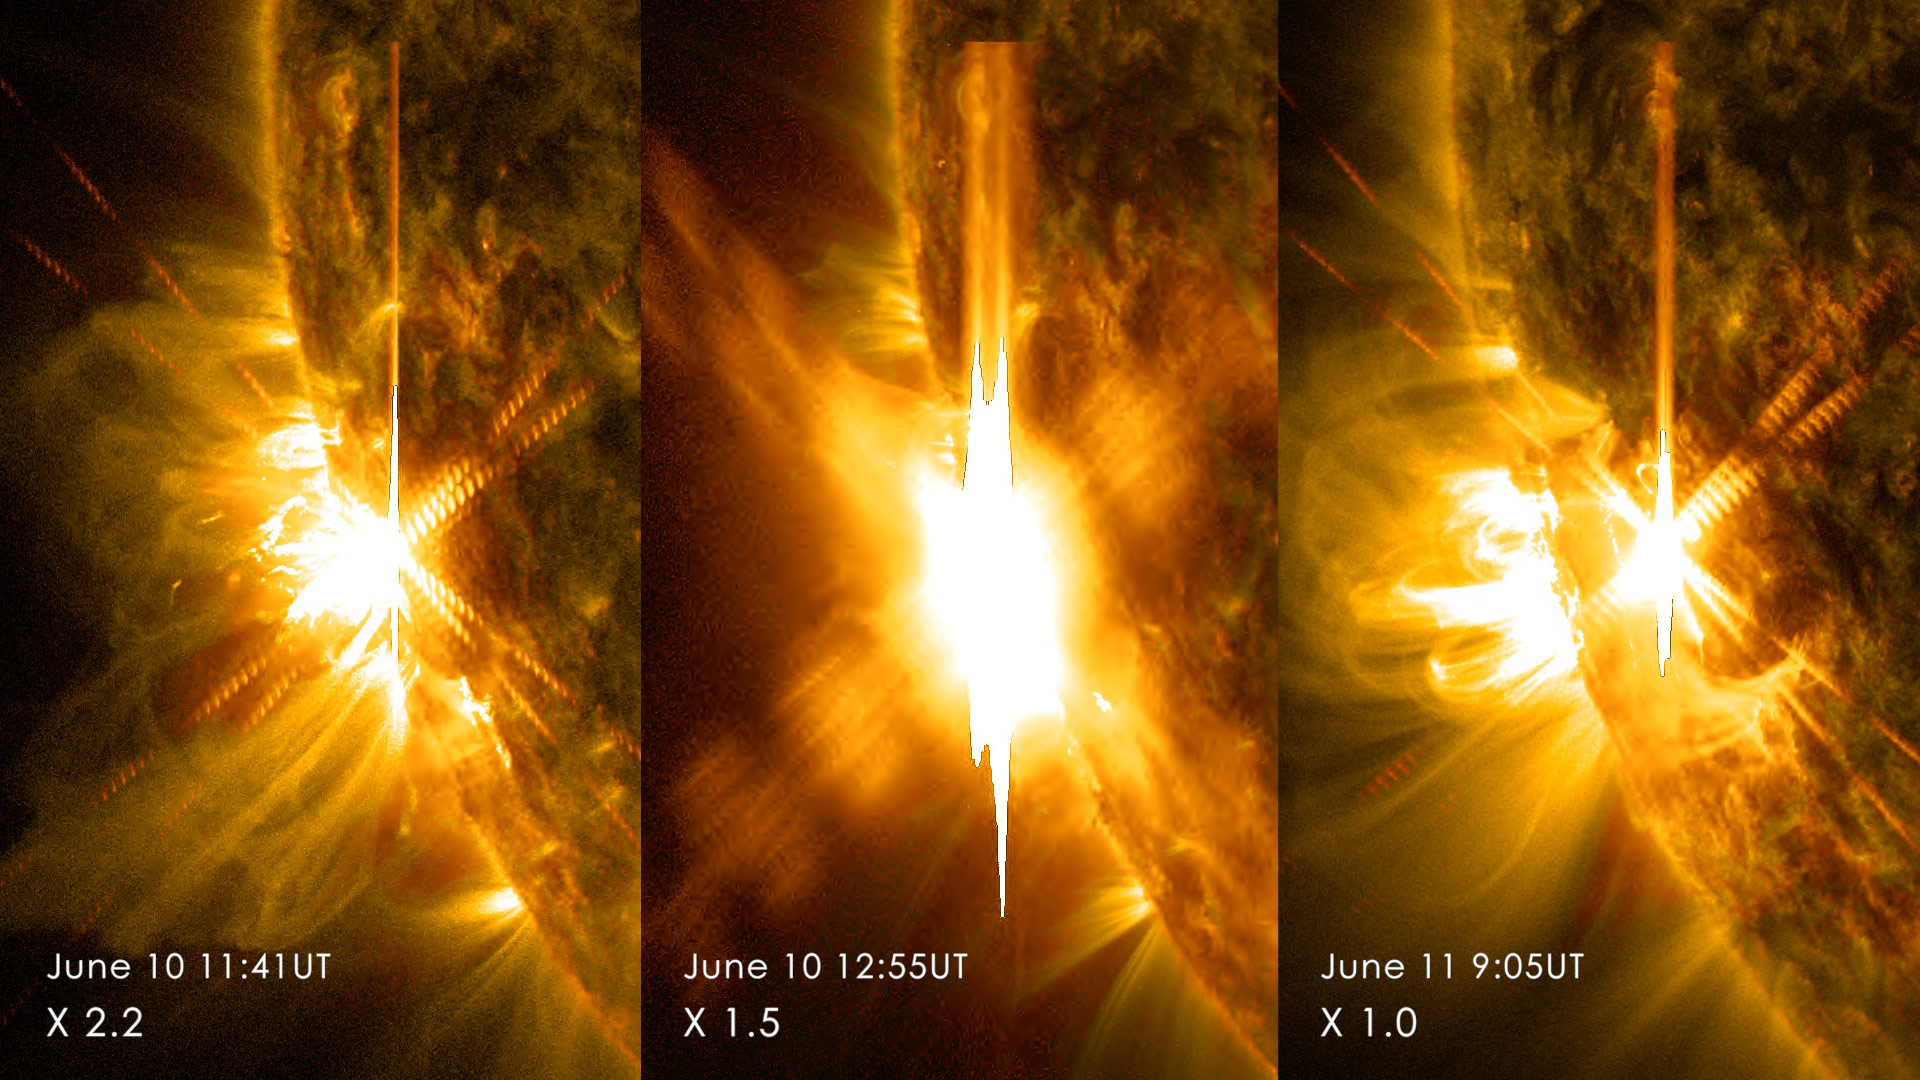 sdo solar dynamics observatory - photo #40